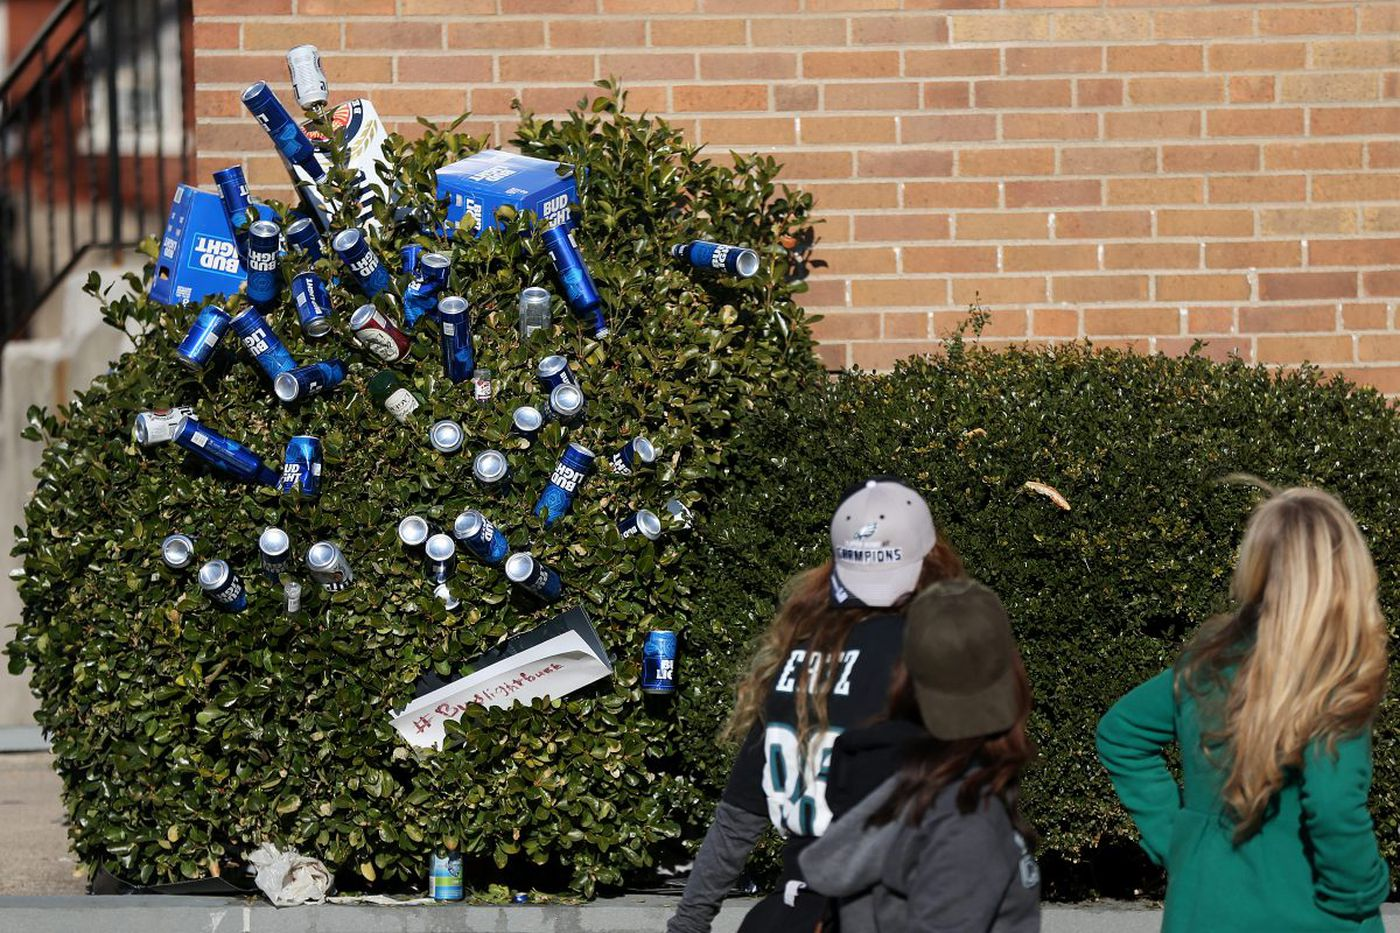 Where did Philly party and find free beer after the Eagles parade?